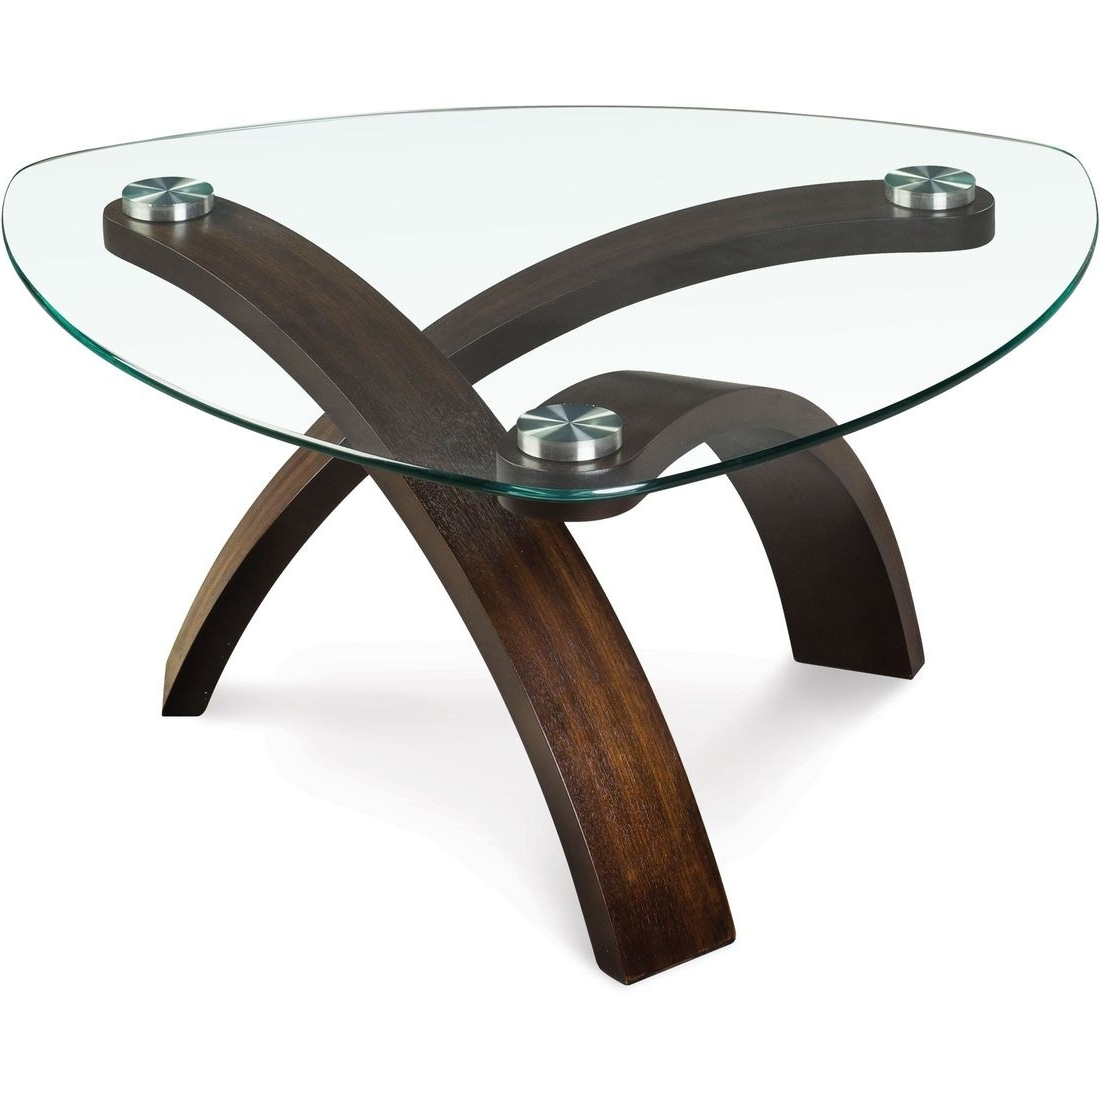 Local Pertaining To Popular Allure Cocktail Tables (View 4 of 20)